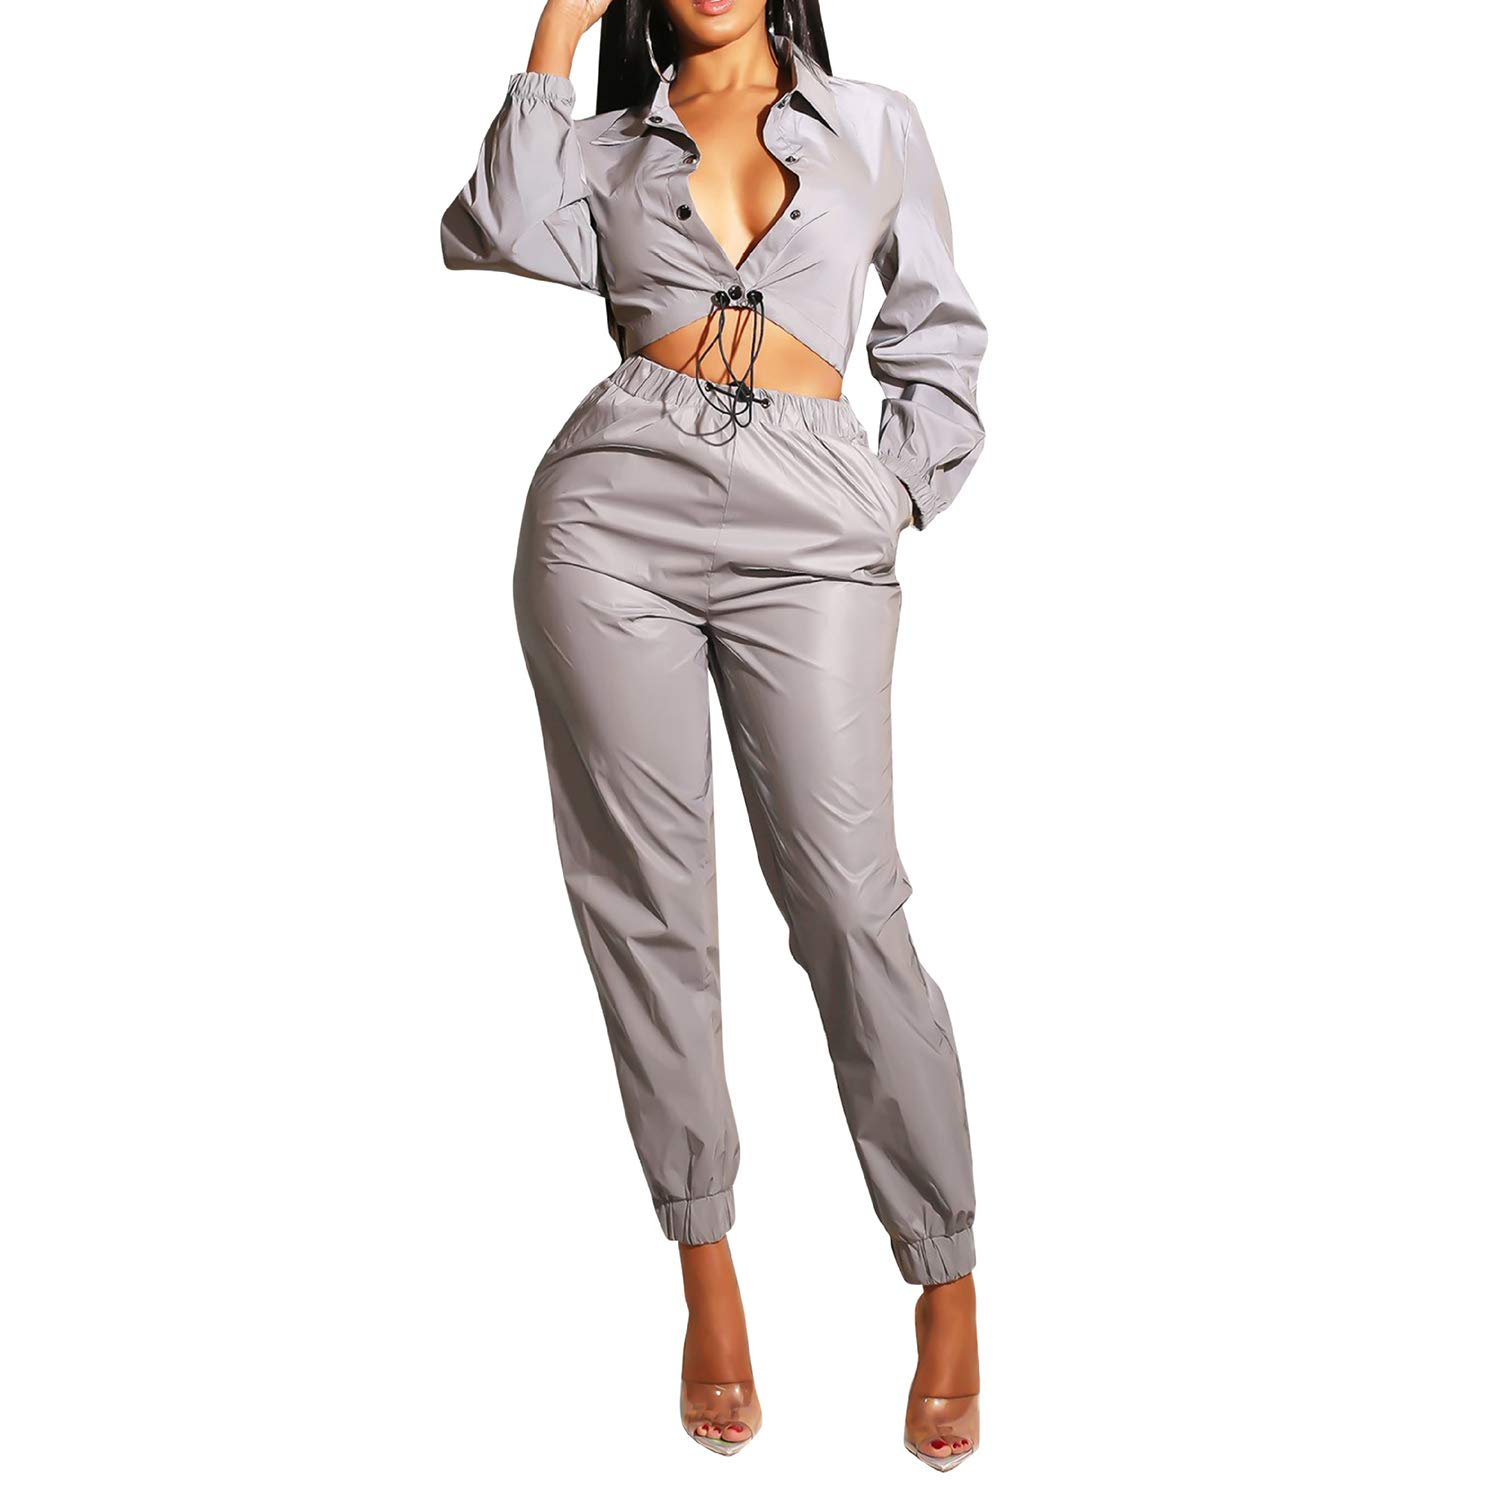 2 Piece Outfits Tracksuit Button Down Sweatpants Set Bodycon Jumpsuits Gray L by Sherro